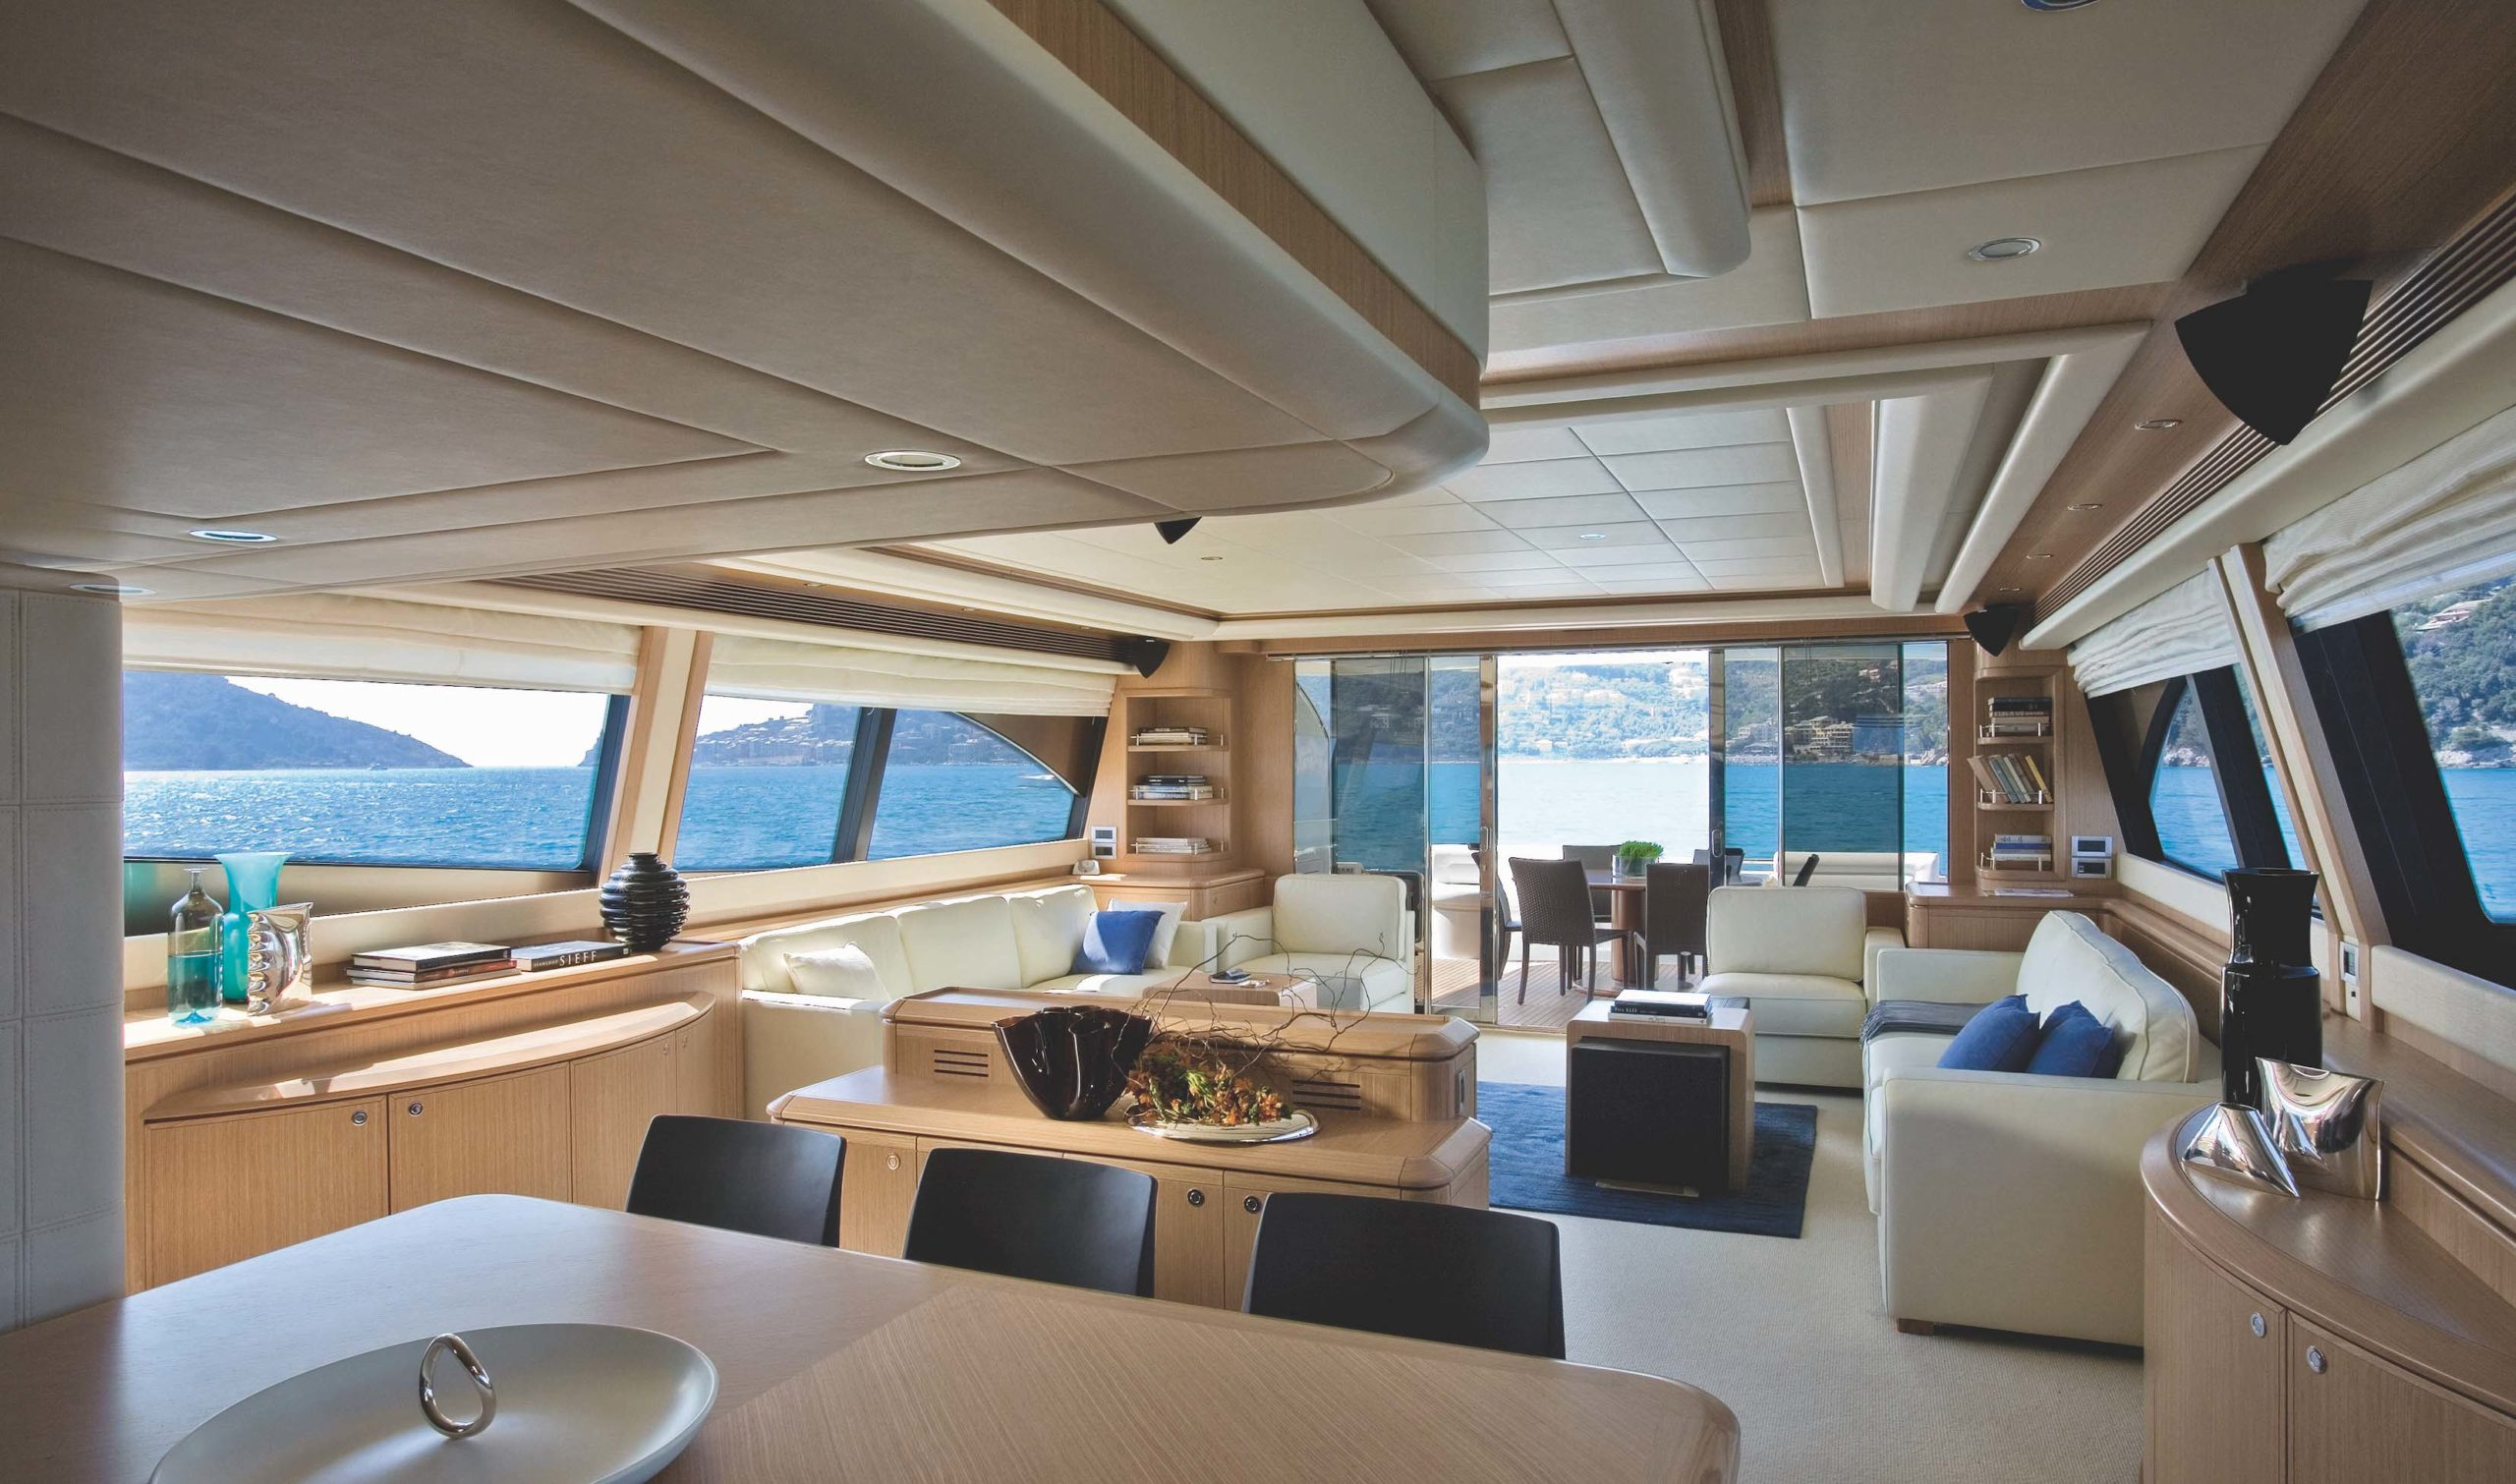 An exceptional interior brightness for this type of boat